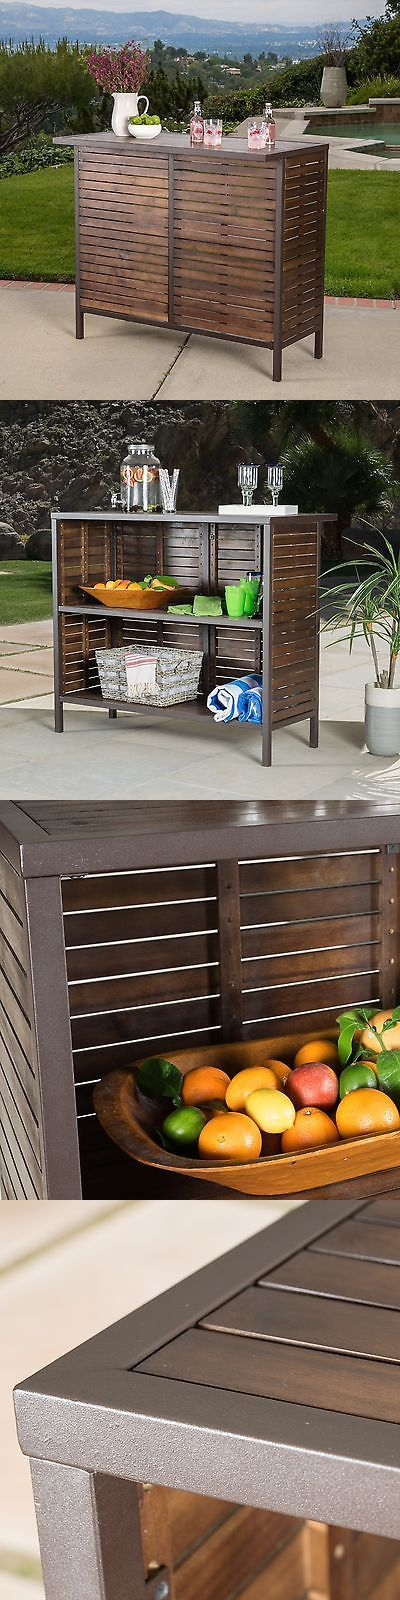 Home Pubs and Bars 115713: Isabel Dark Brown Acacia Wood And Rustic Metal Outdoor Bar Table -> BUY IT NOW ONLY: $219.99 on eBay!